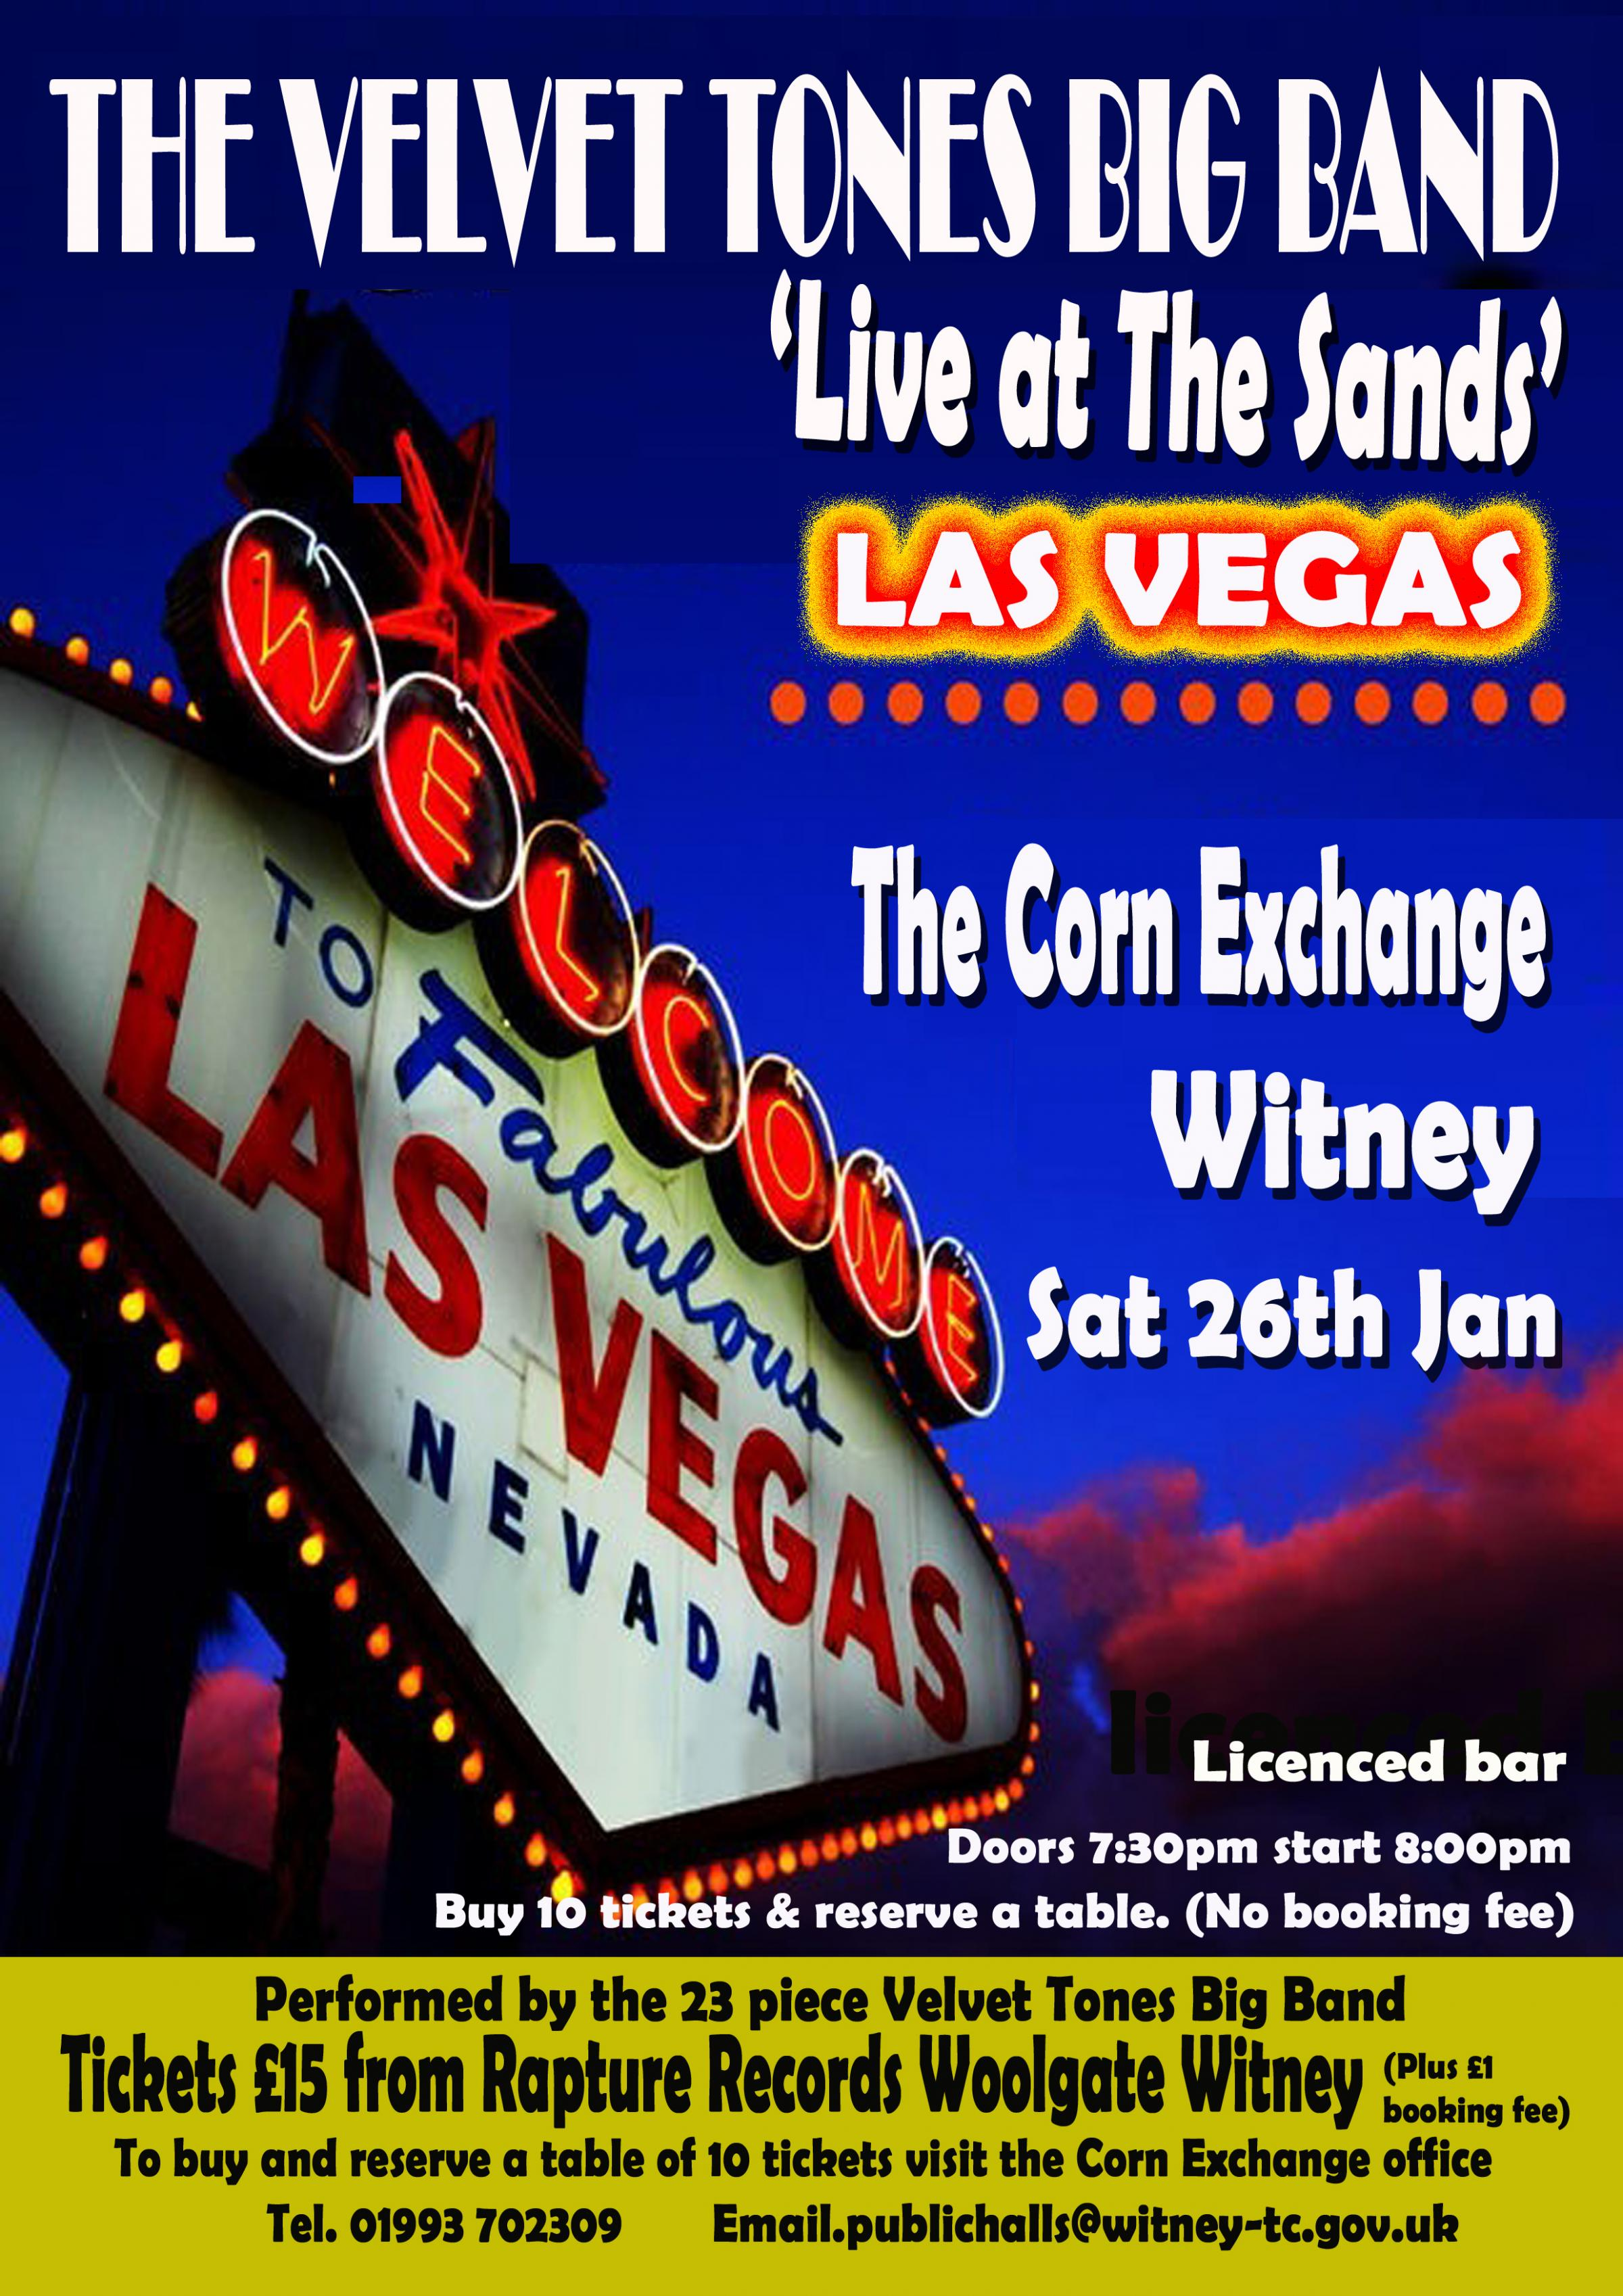 The Velvet Tones Big Band, 'Live at The Sands Las Vegas'